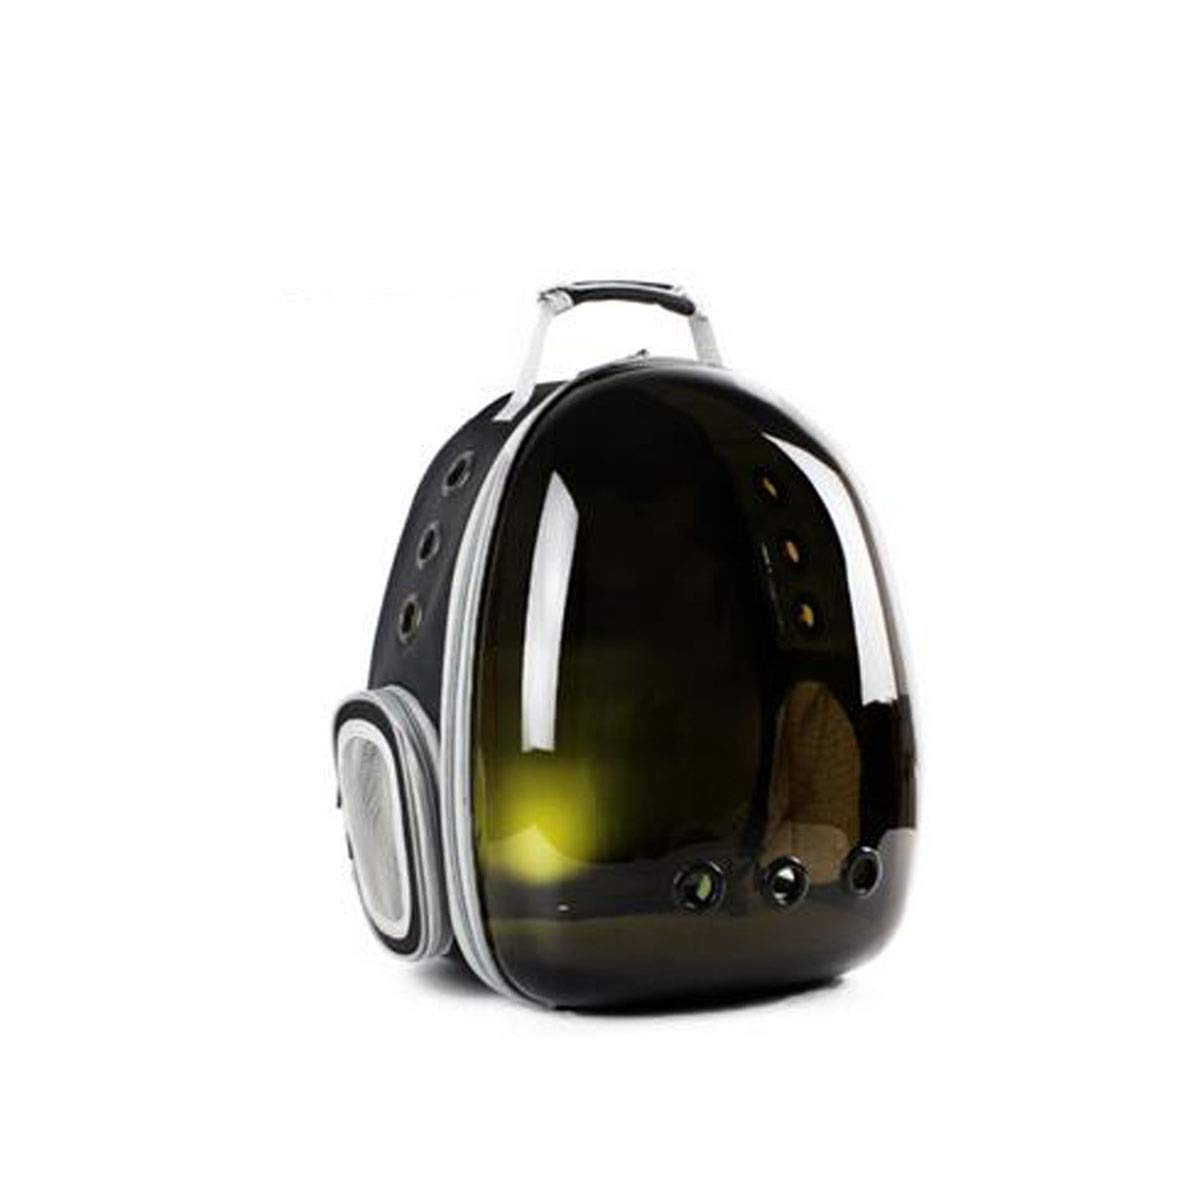 Black Guyuexuan Waterproof Pet Backpack, Space Capsule Bubble Transparent Backpack, Airline Approved, Suitable for Travel, Hiking, Walking Pet Travel Essentials (color   Black)